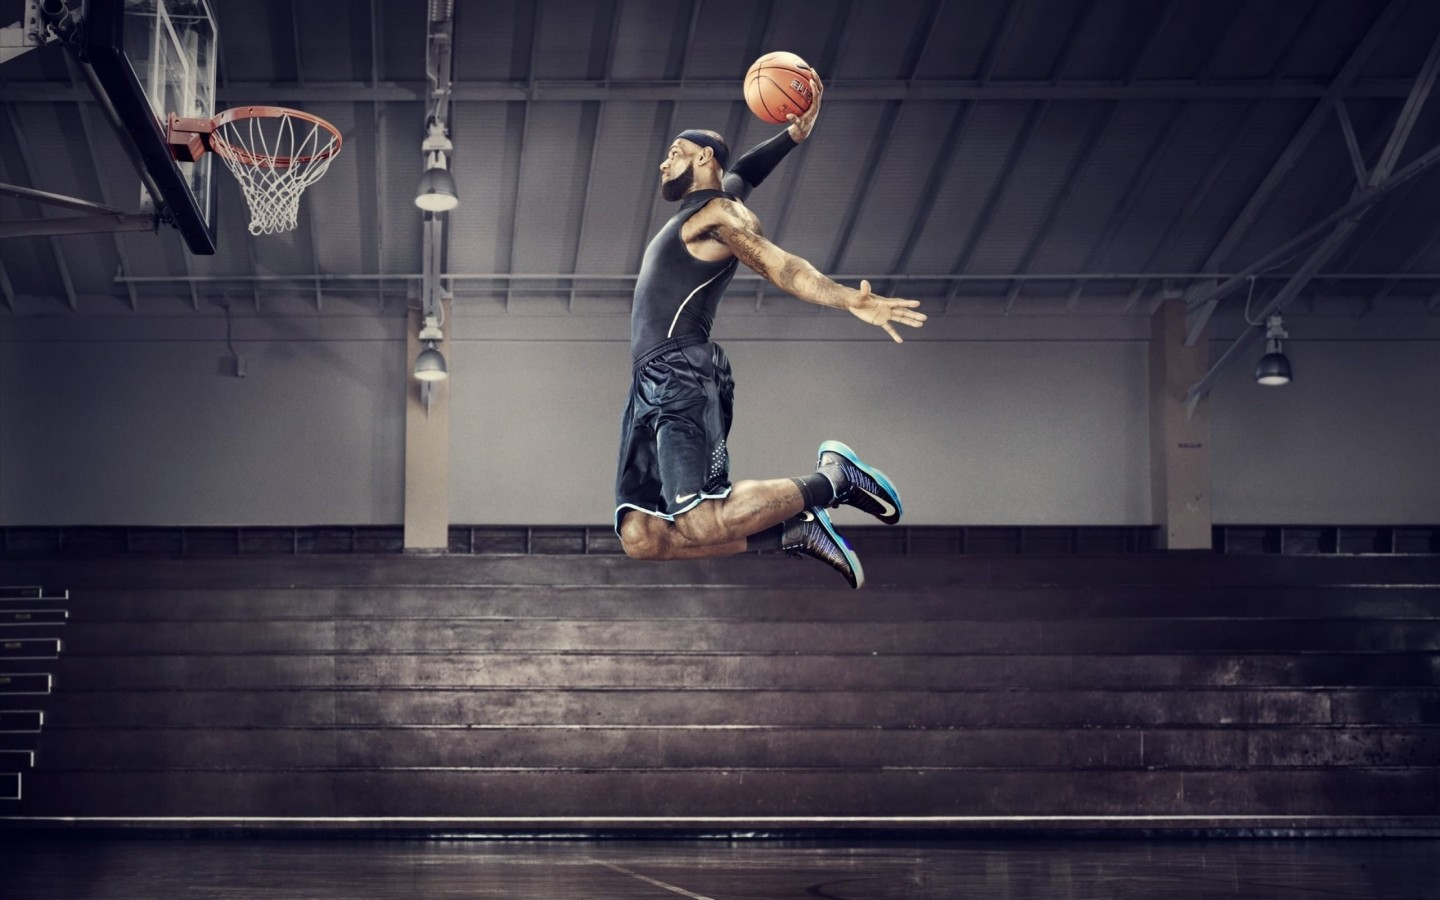 Lebron James Dunk Wallpaper for Desktop 1440x900